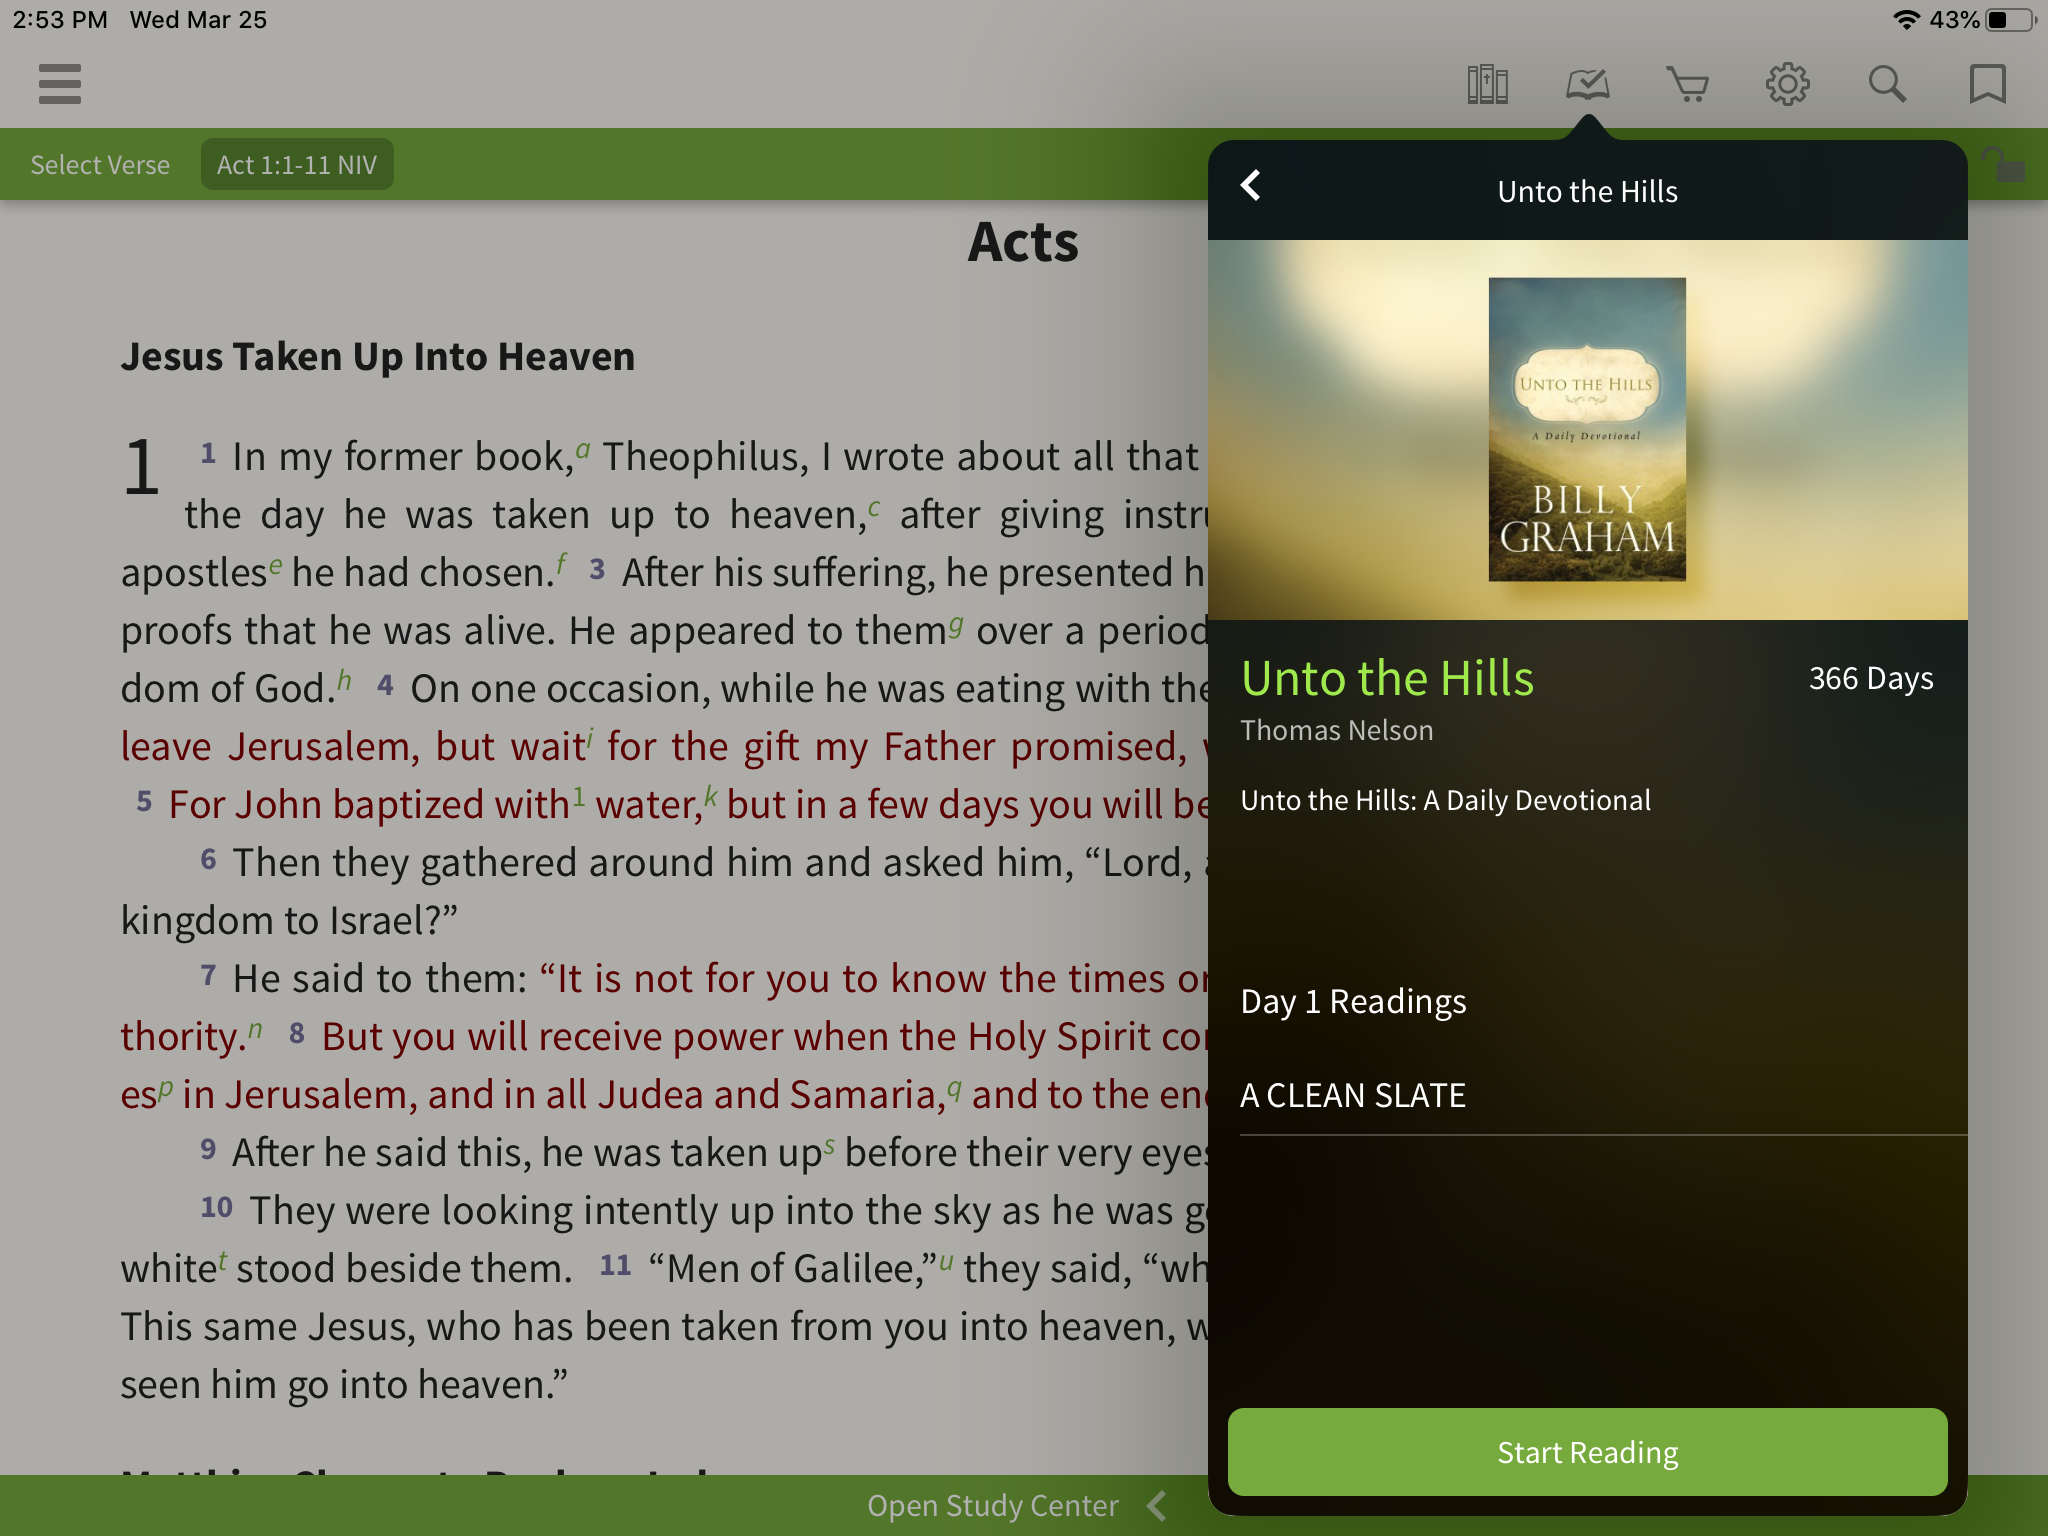 Unto the Hills devotional reading plan in the app